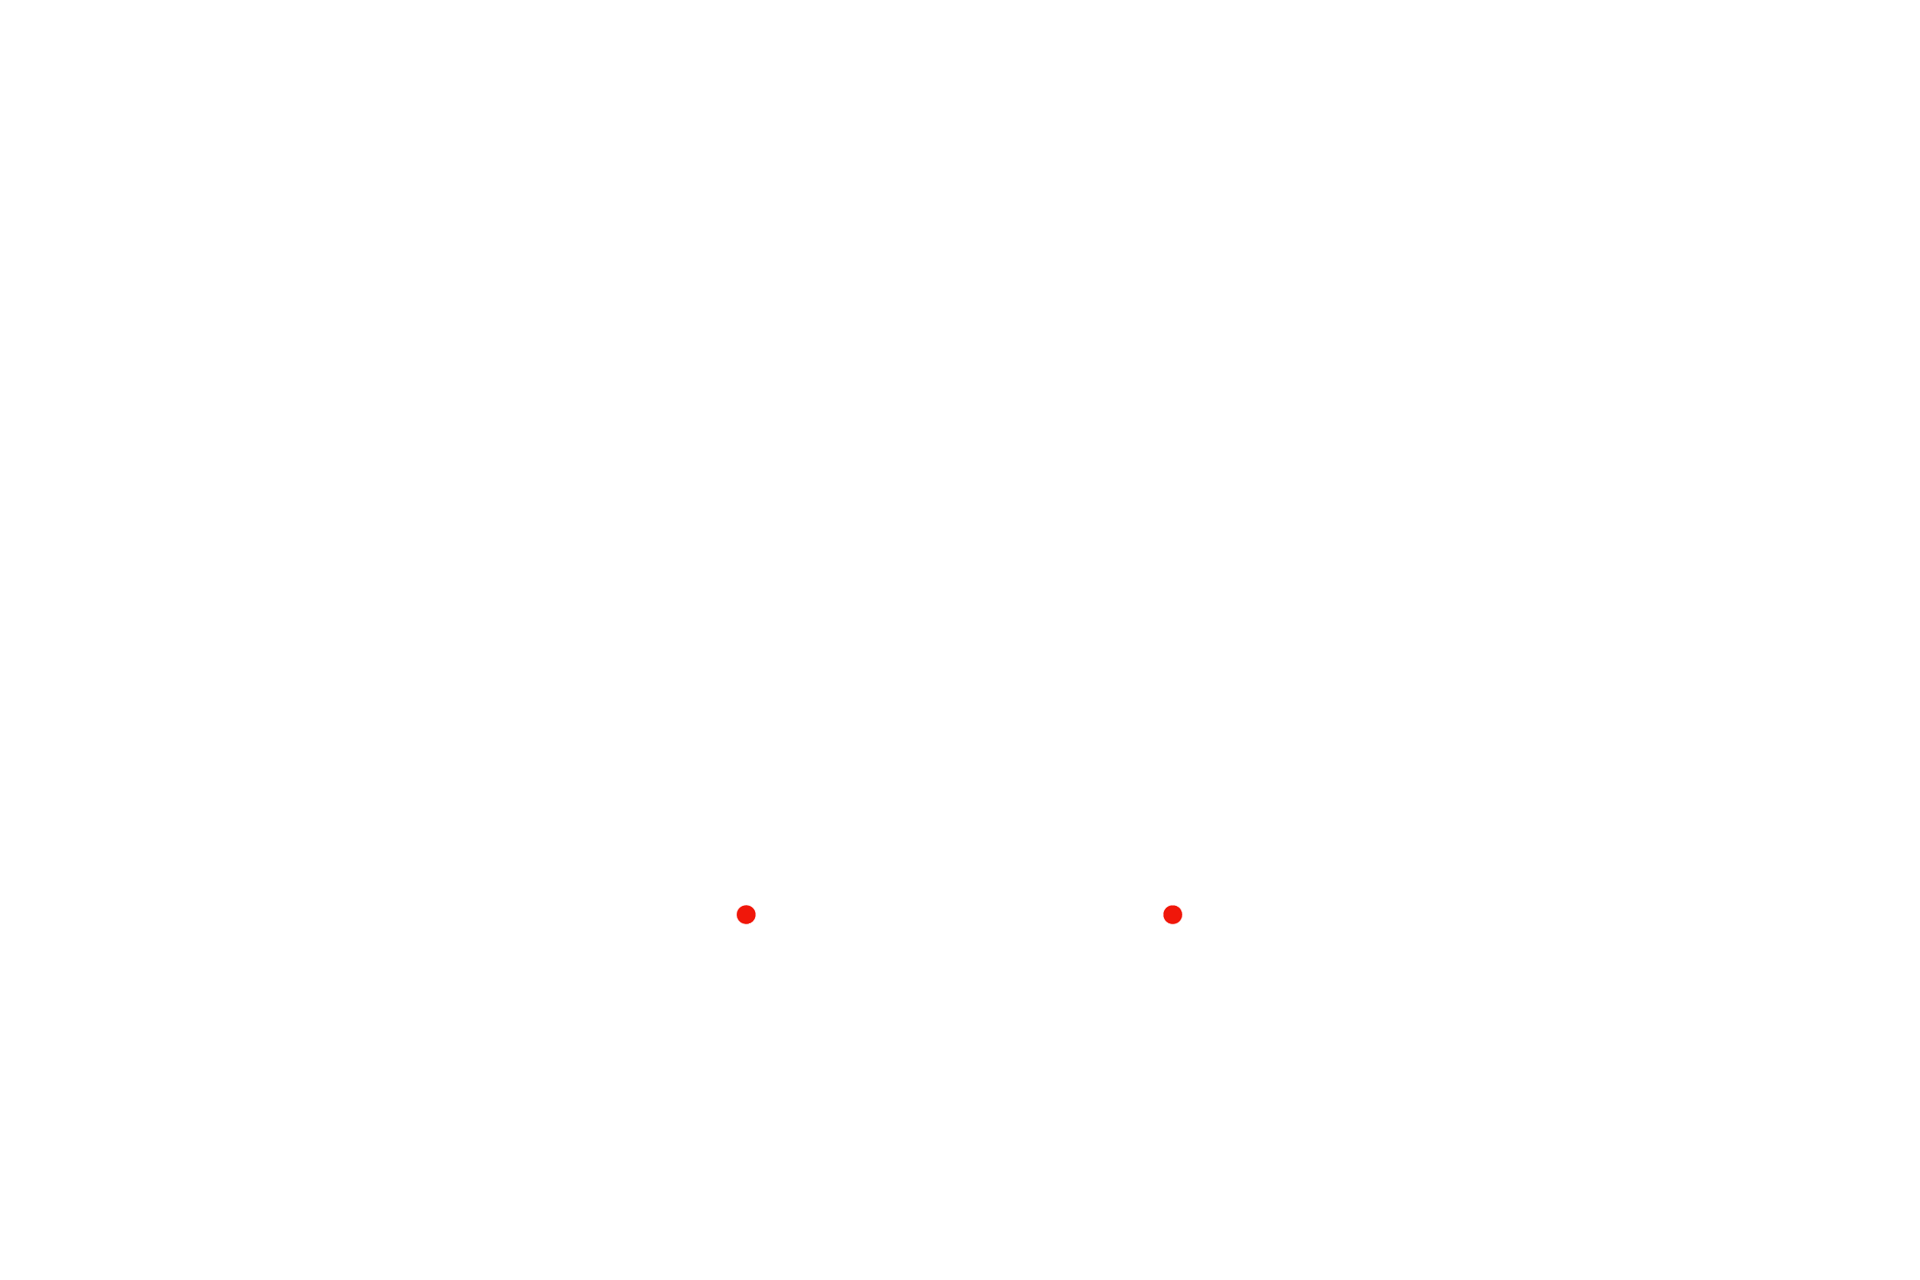 Cambian Advanced Engineering Logo